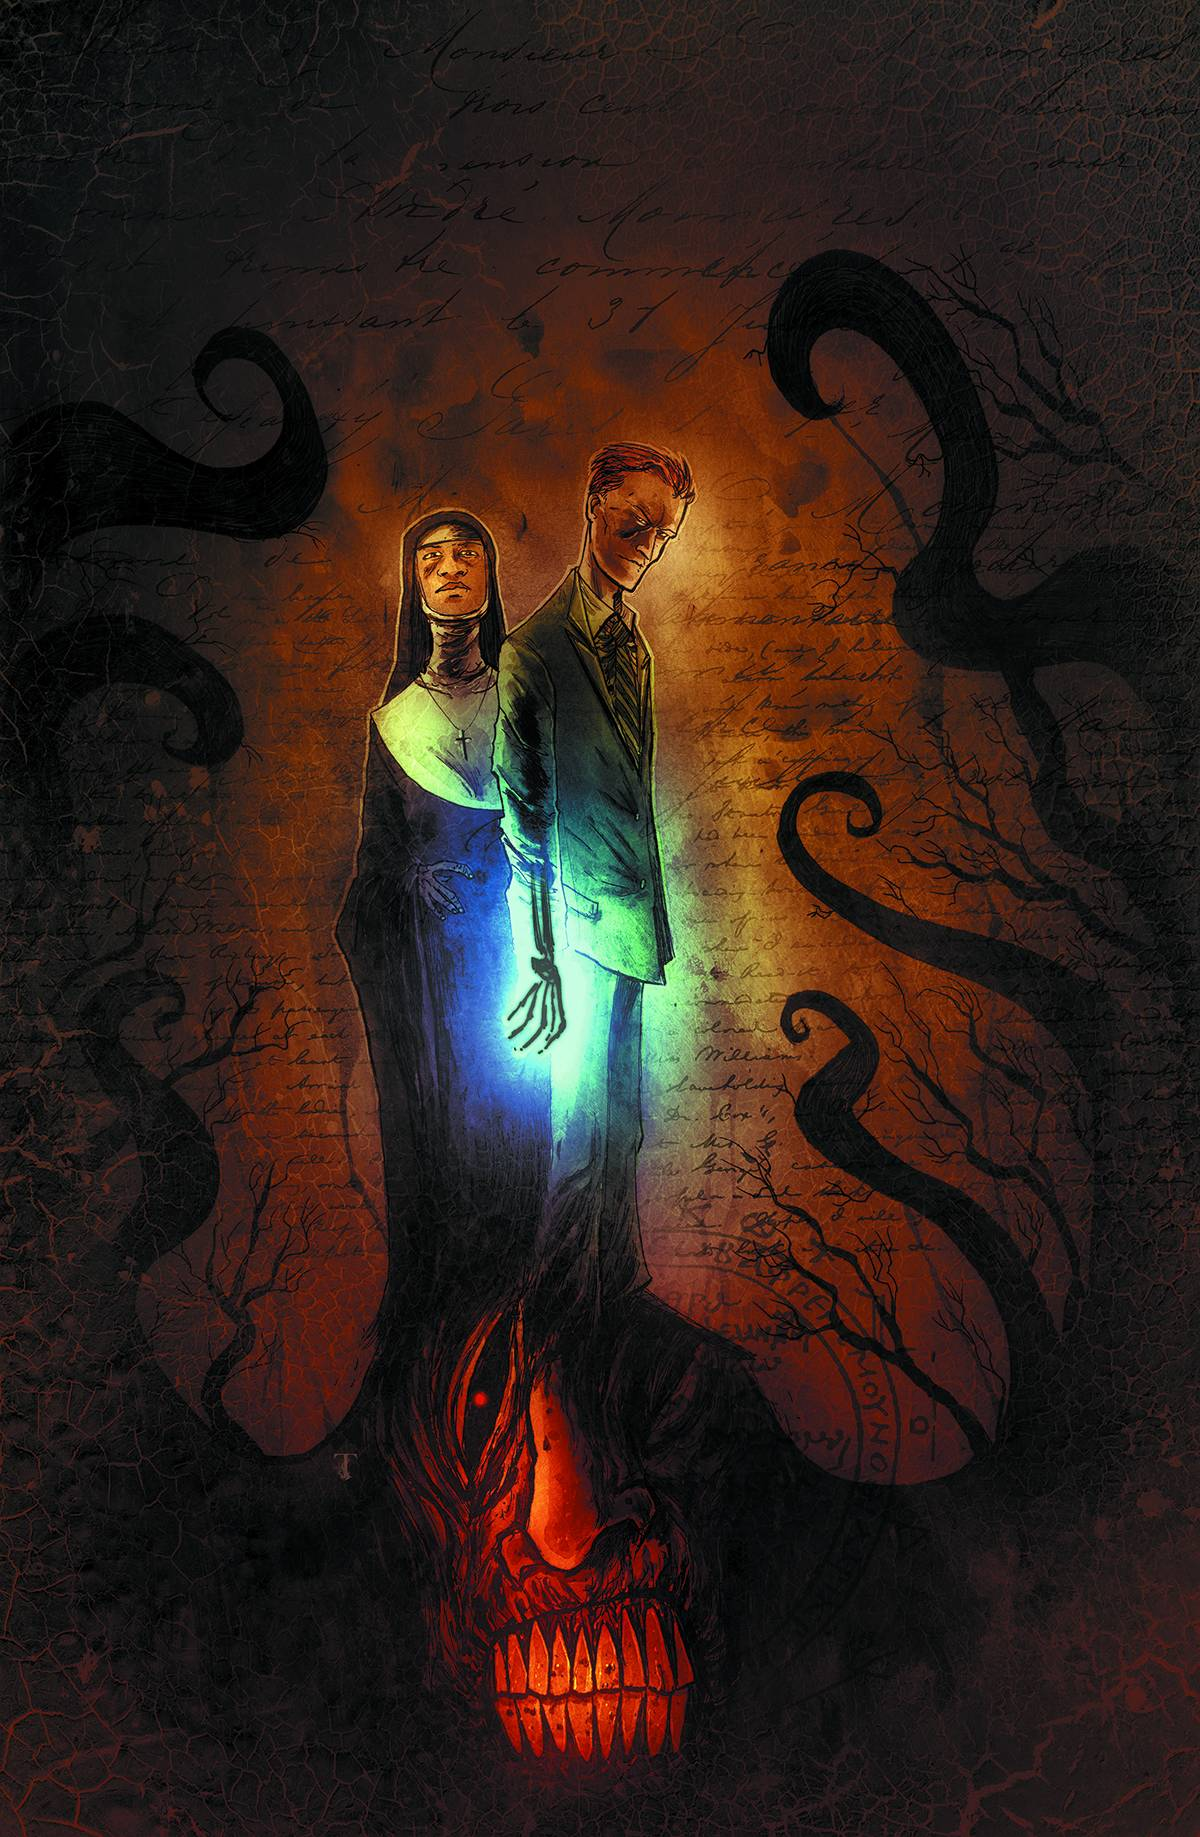 Cover by Ben Templesmith